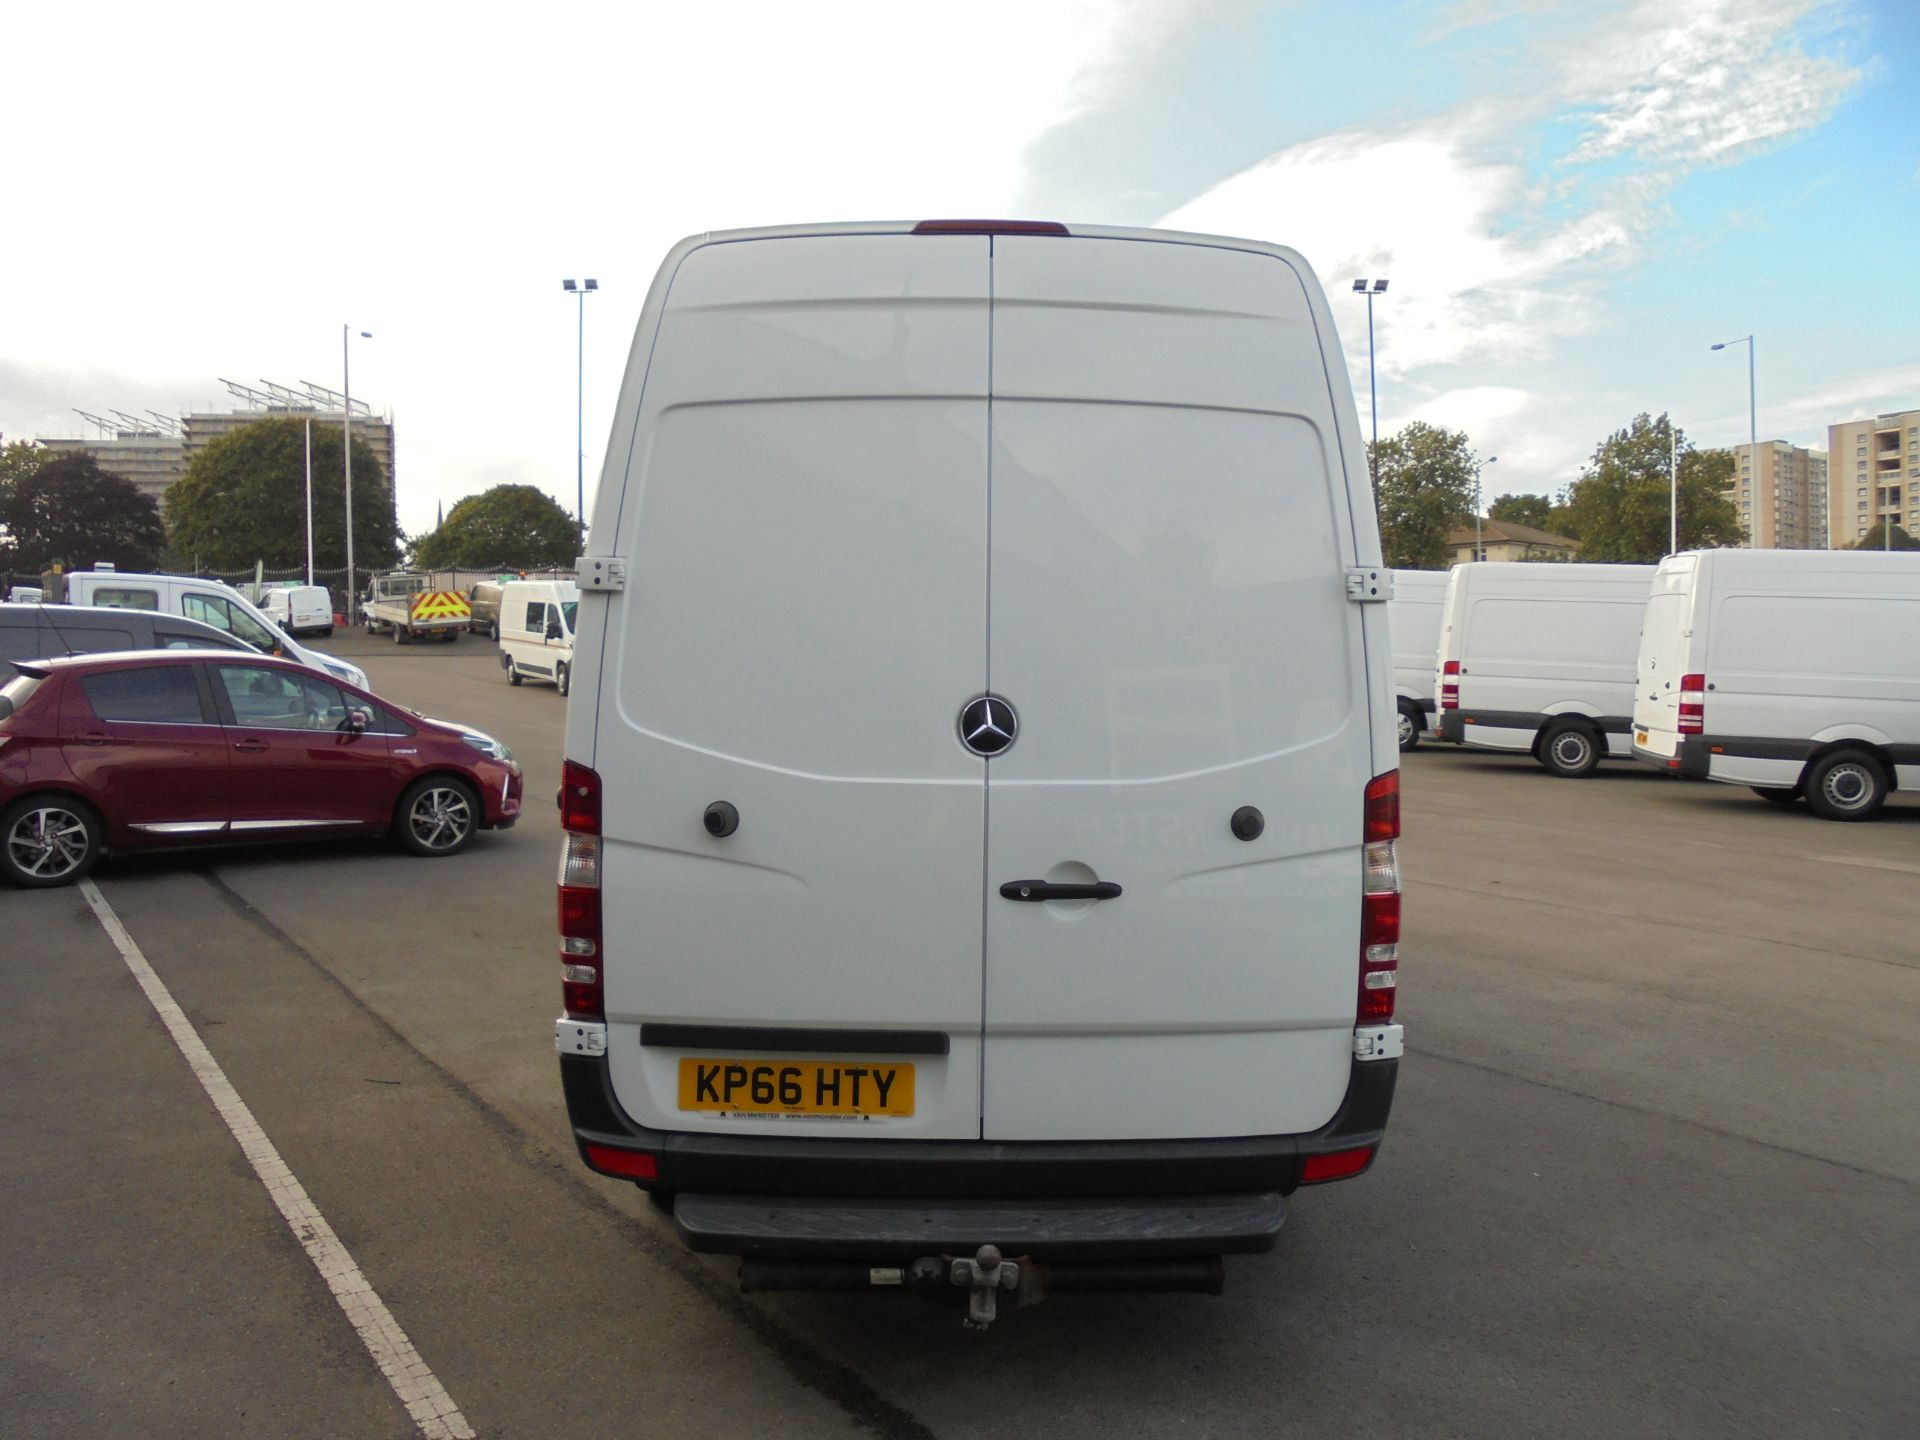 2016 Mercedes-Benz Sprinter 3.5T High Roof Van MWB (KP66HTY) Thumbnail 6